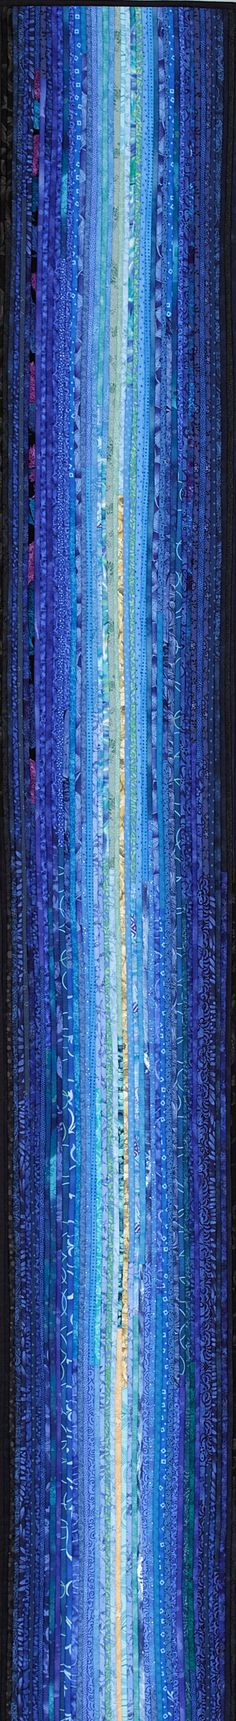 Ann Brauer, Blue River, 80 by 12 inches